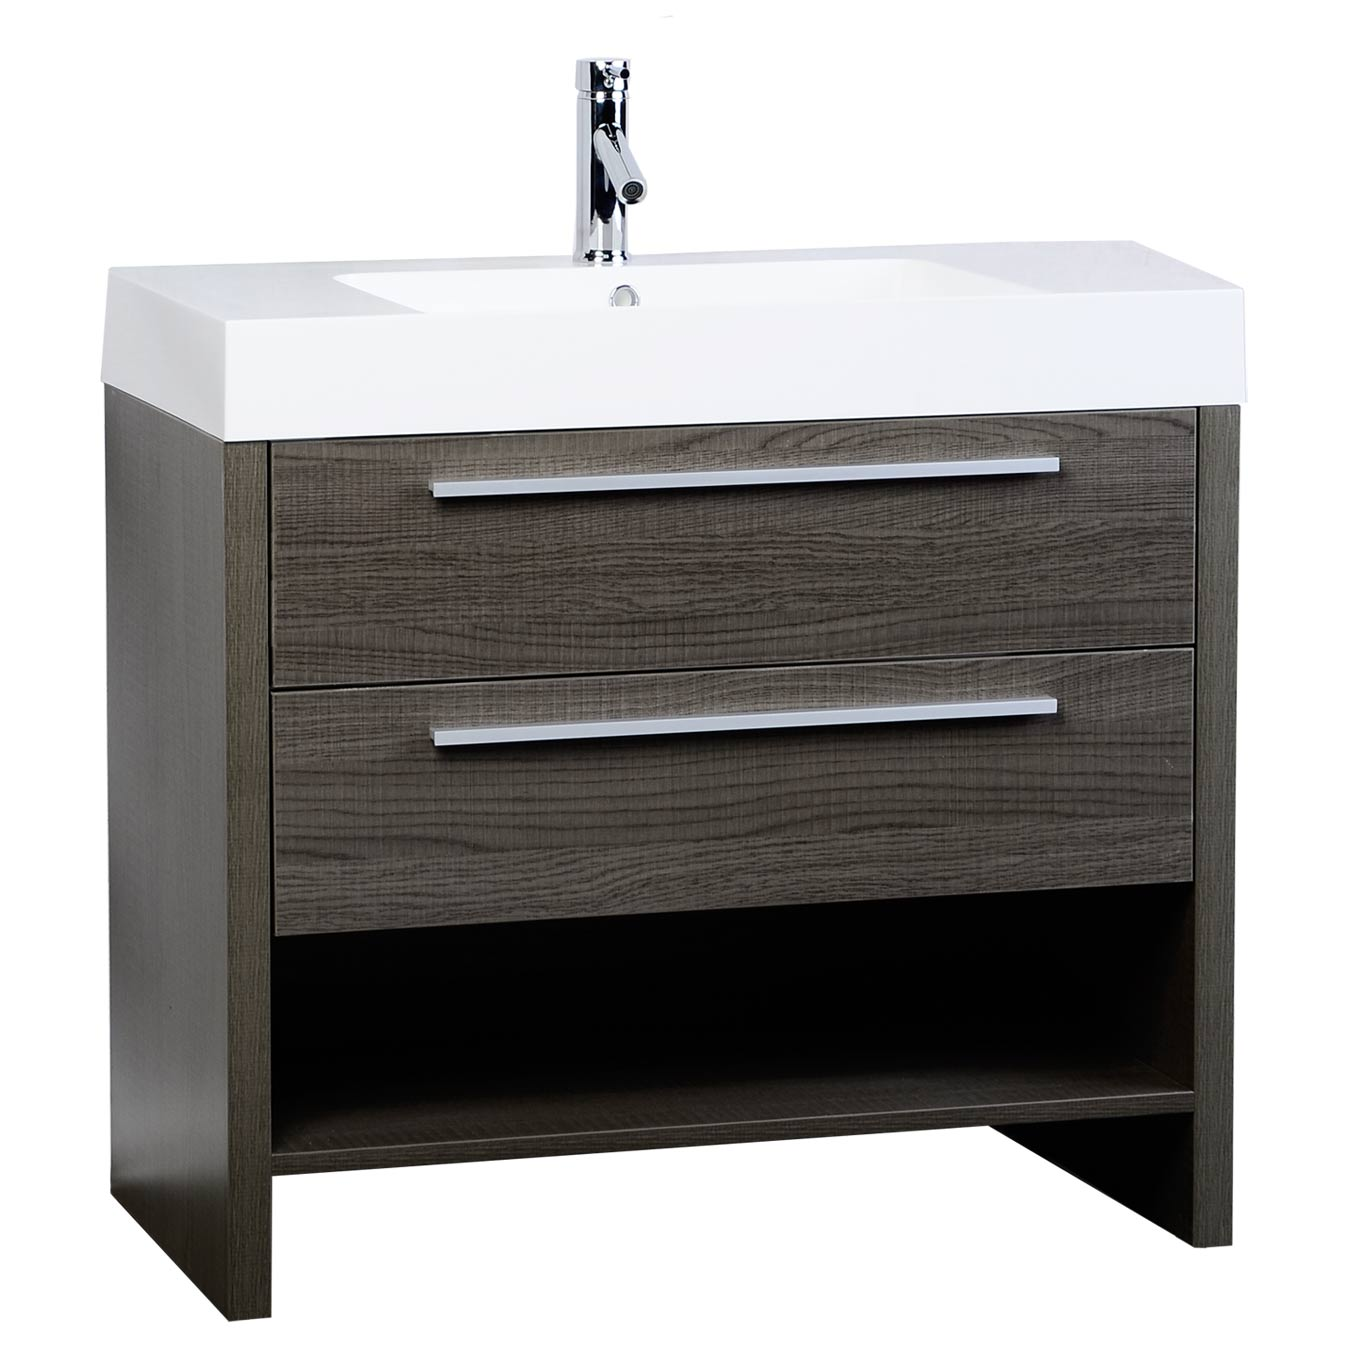 Mula 35 5 modern bathroom vanity oak rs l900 oak on for Bathroom vanities